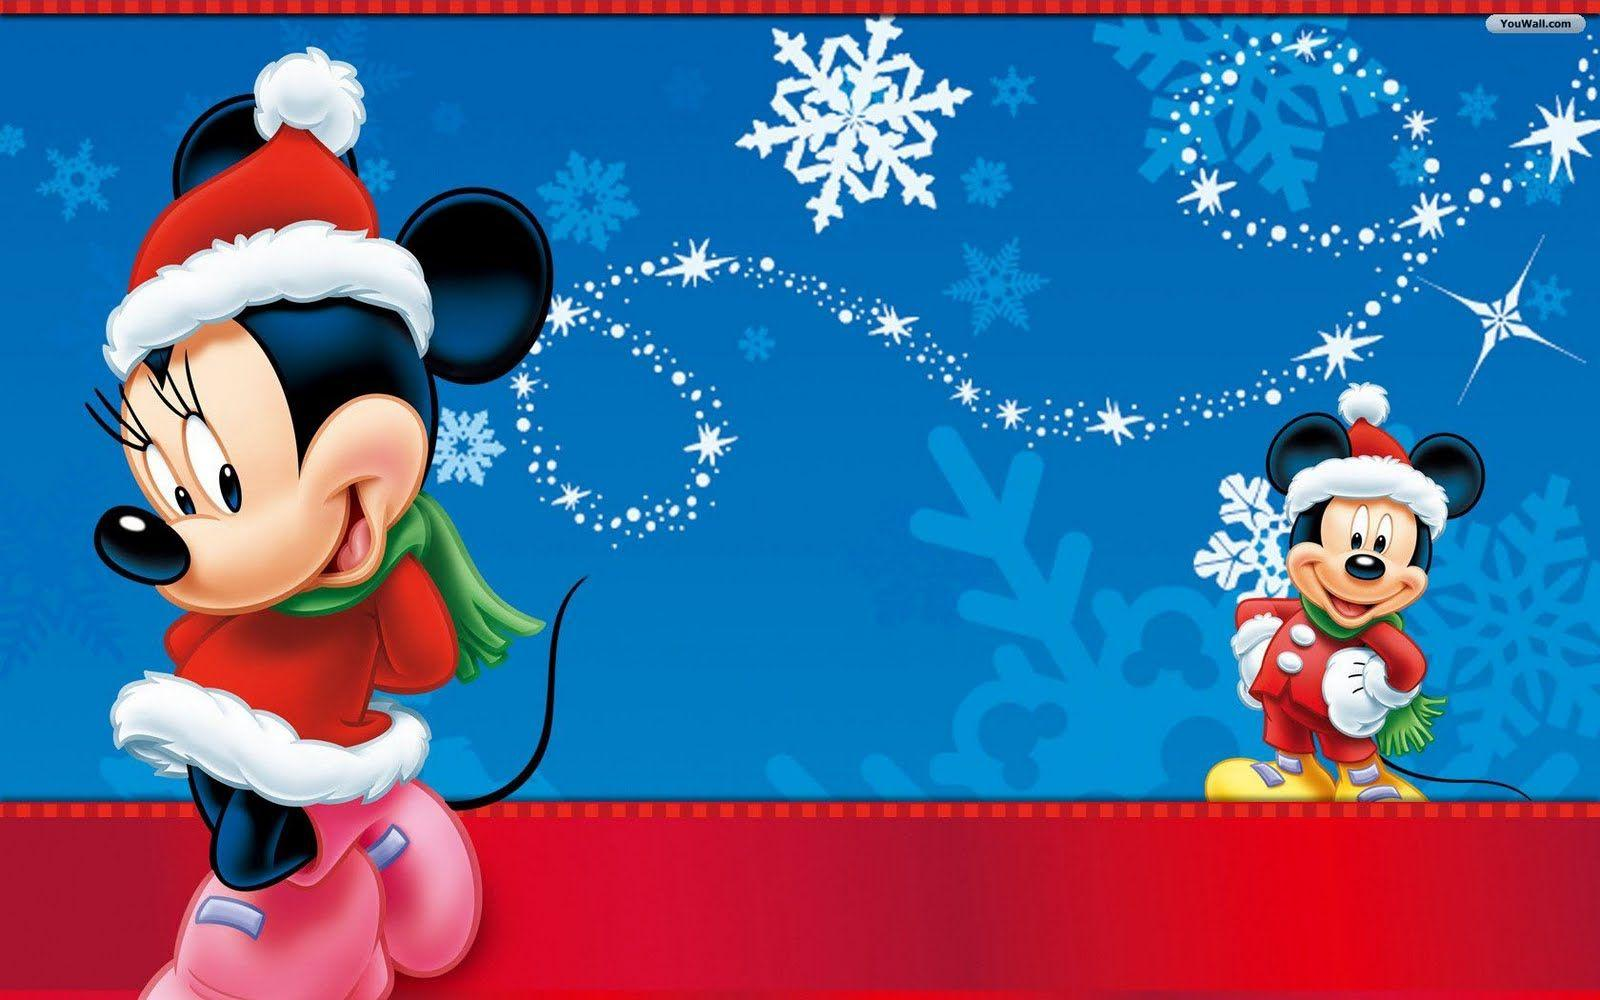 Charming Disney Christmas Wallpapers Desktop 1600x1000PX ~ Disney